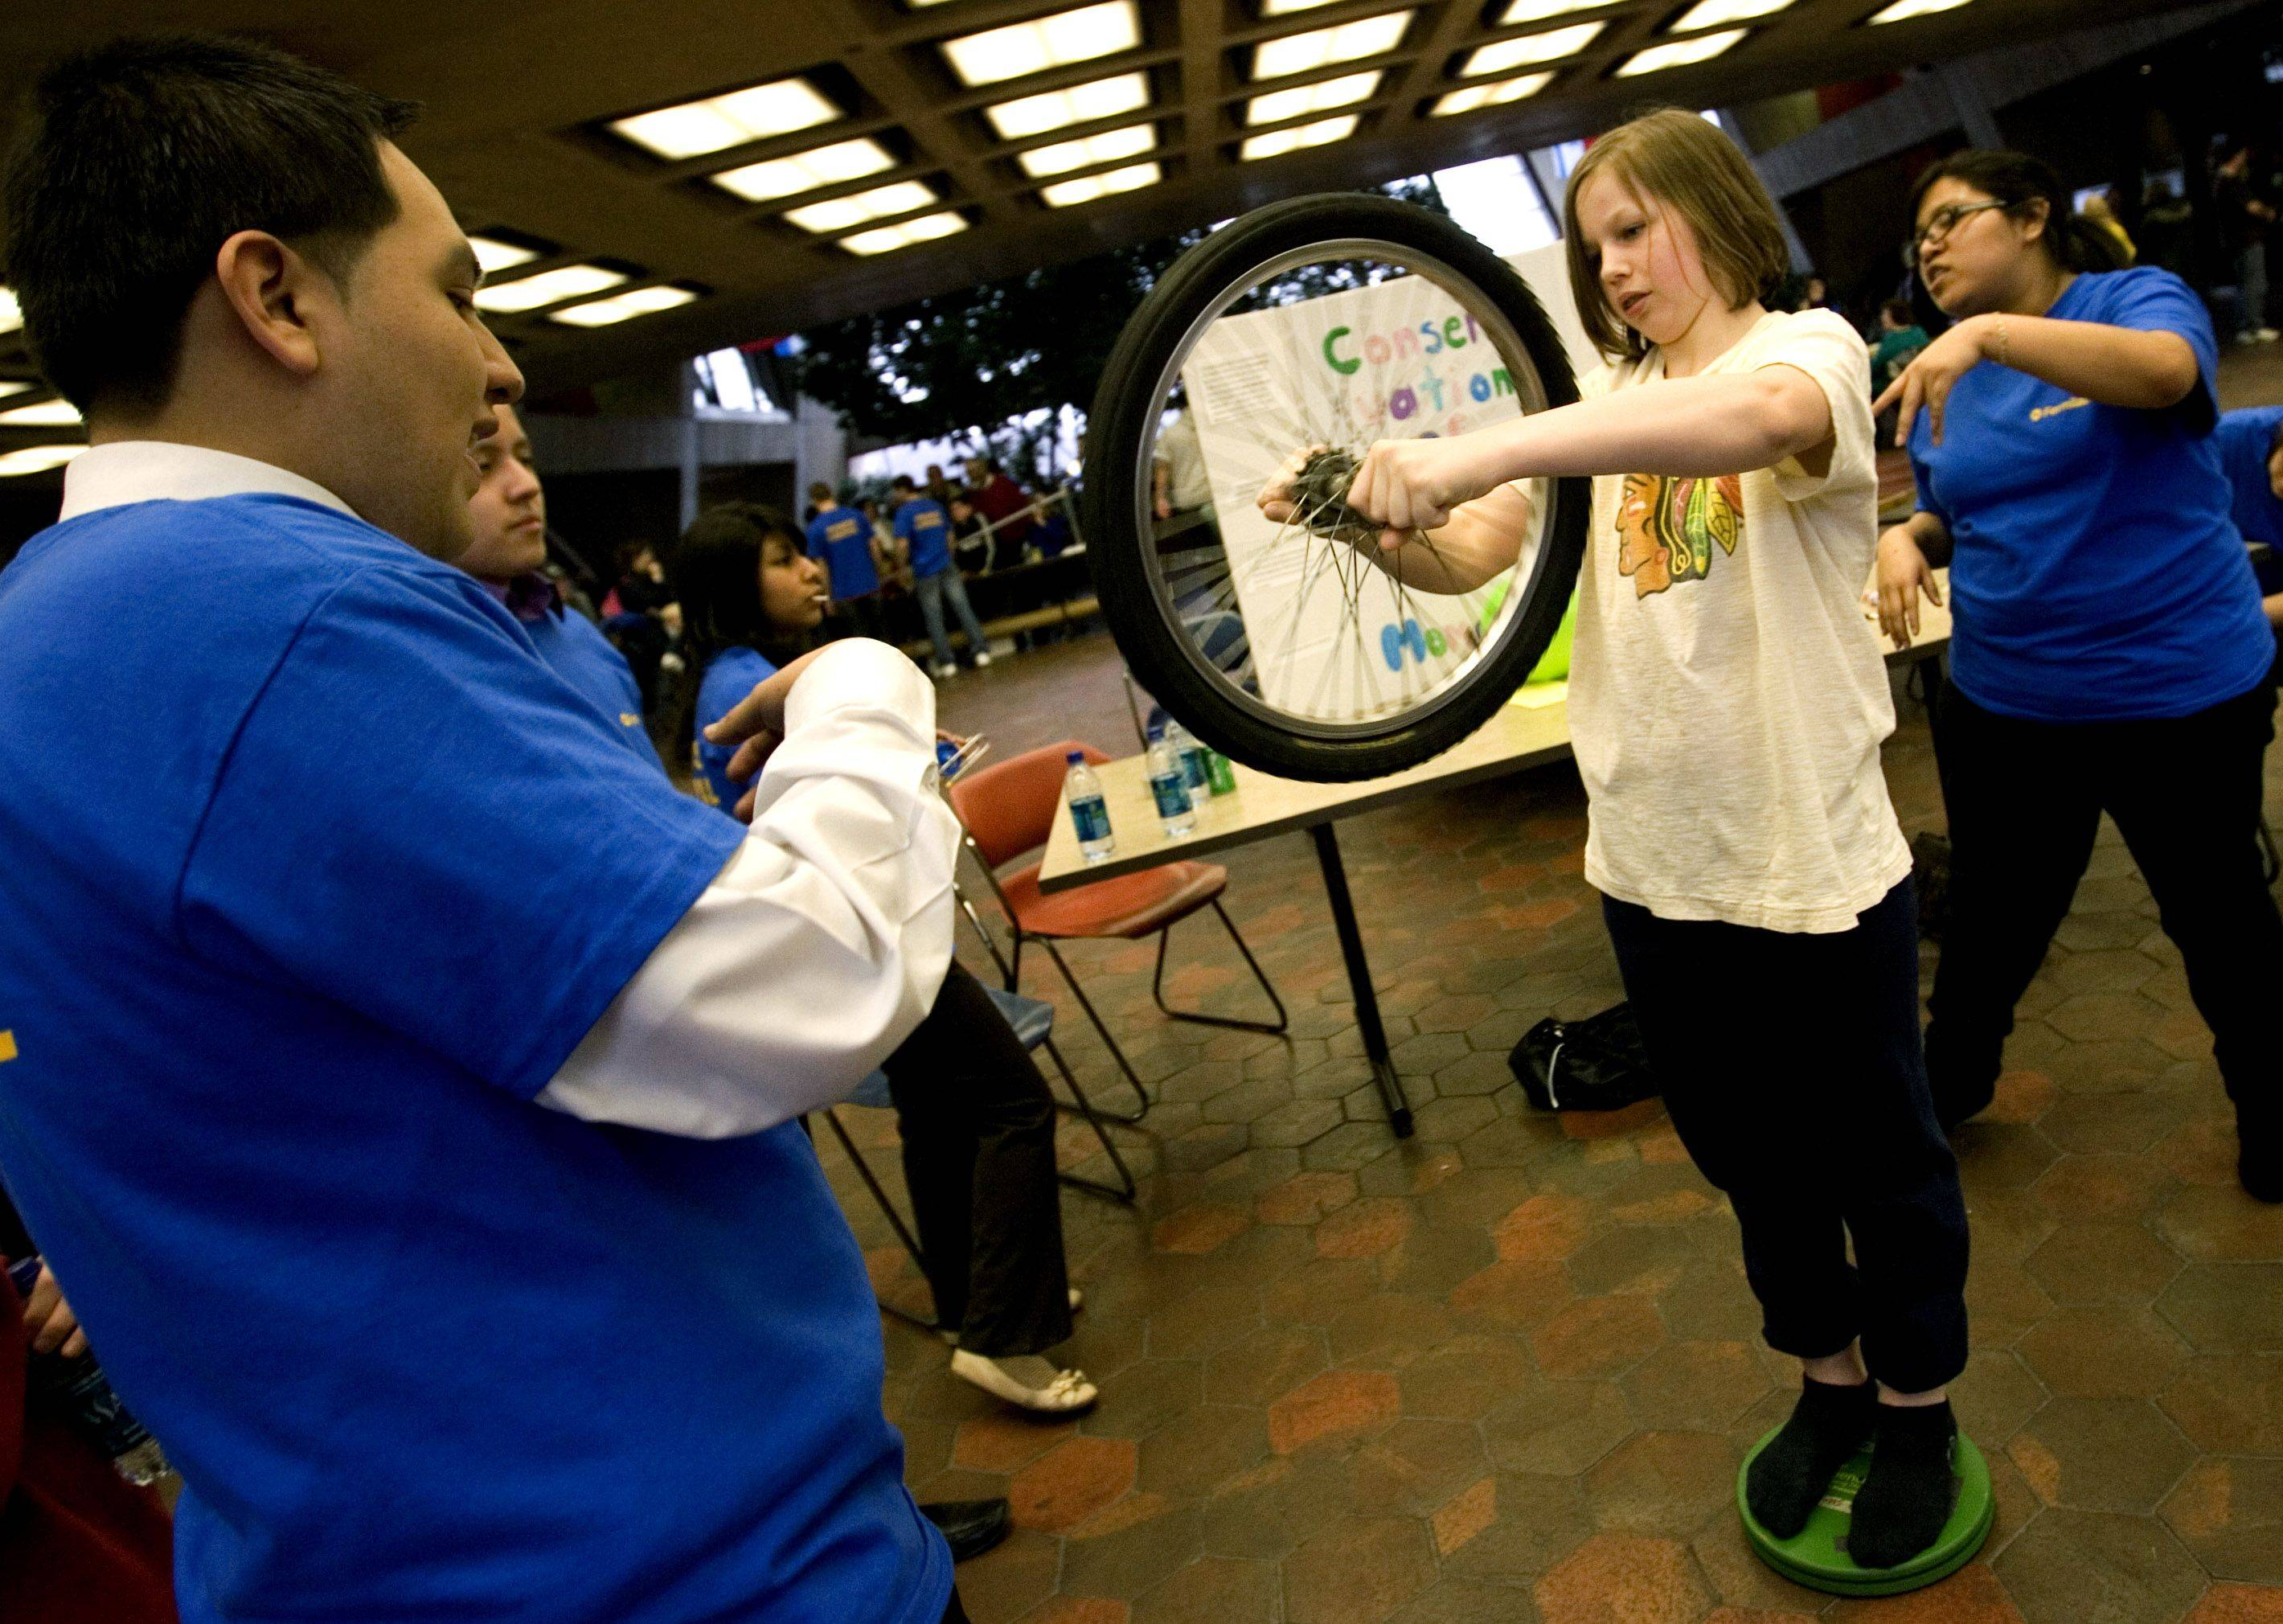 Richard Komendanchik, 13, of Downers Grove tries out the conservation of angular momentum with help from Cristo Rey Jesuit High School students Gabriel cerda, left, and Elaine Ocampo, right, during Fermilab's open house Sunday in Batavia.